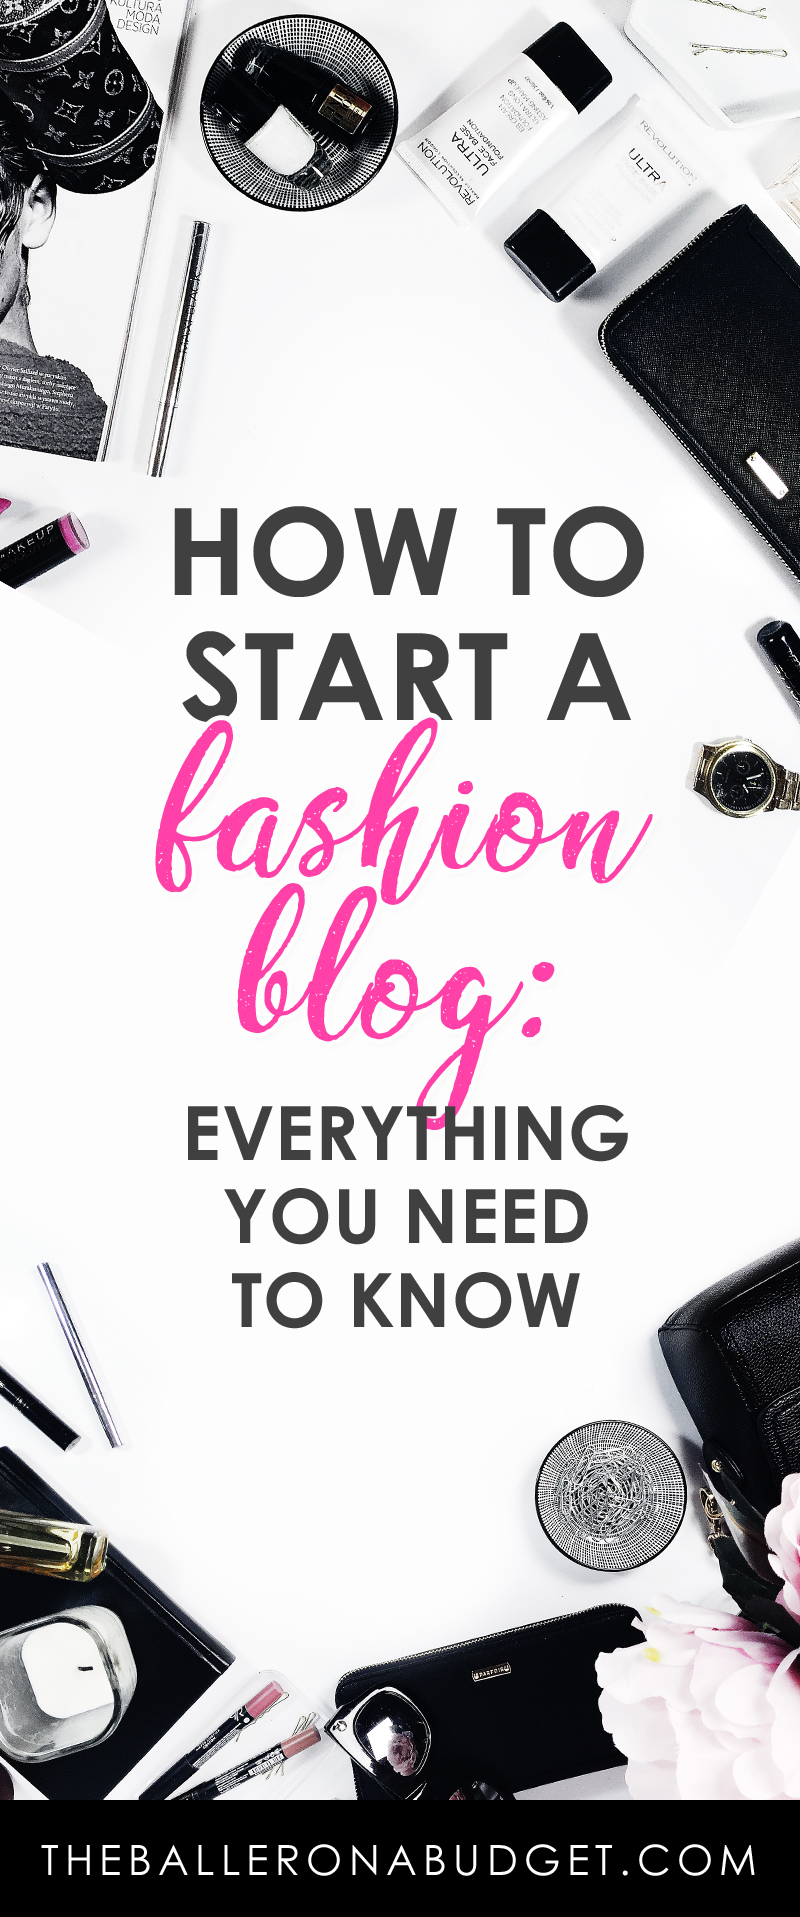 How To Start A Fashion Blog: The Ultimate Guide